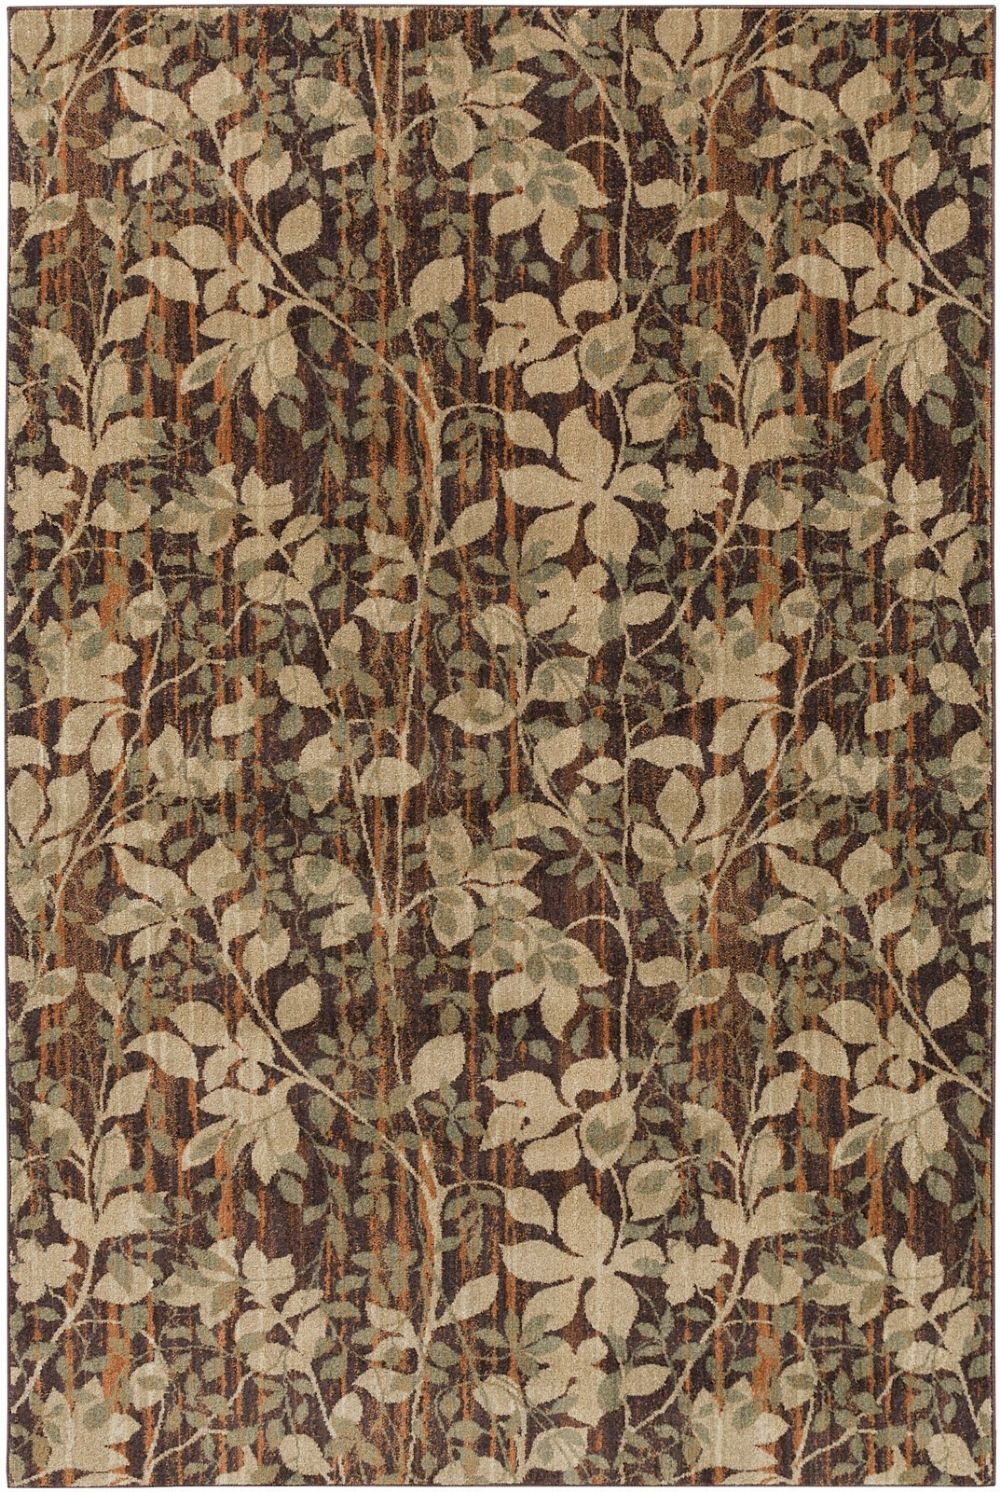 surya arabesque country & floral area rug collection